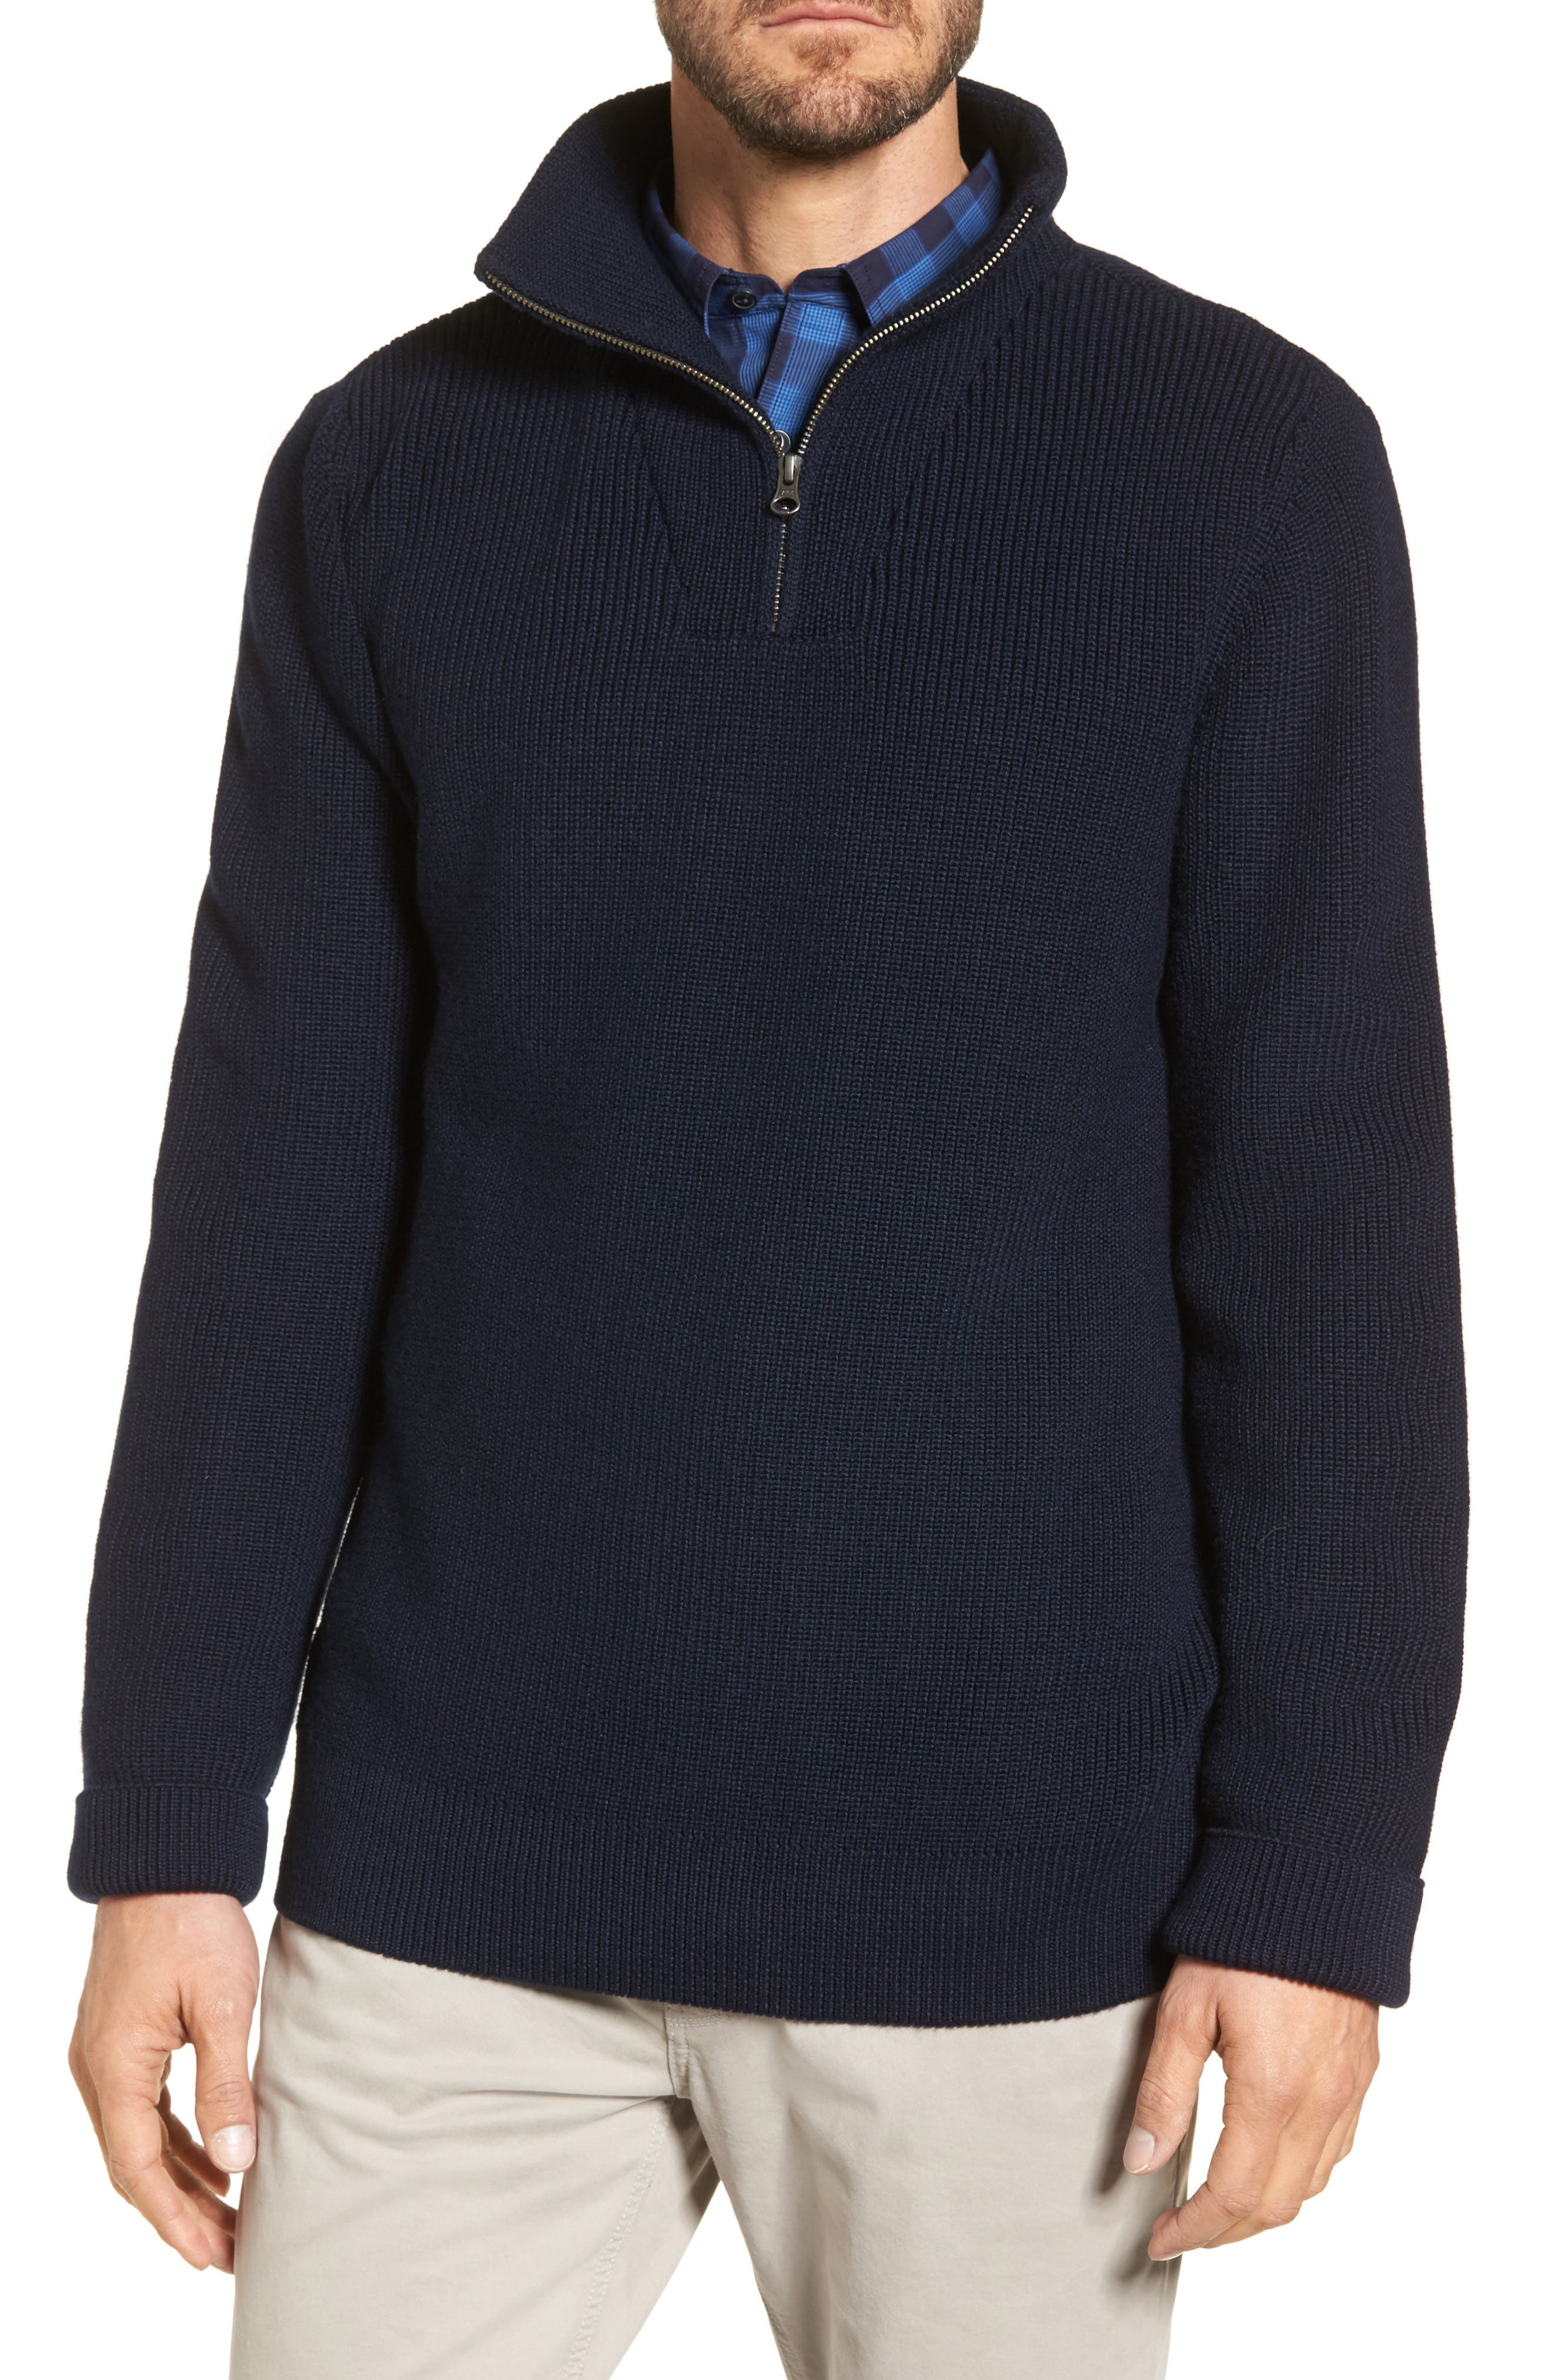 Ribbed Quarter Zip Sweater,                         Main,                         color, Navy Captain